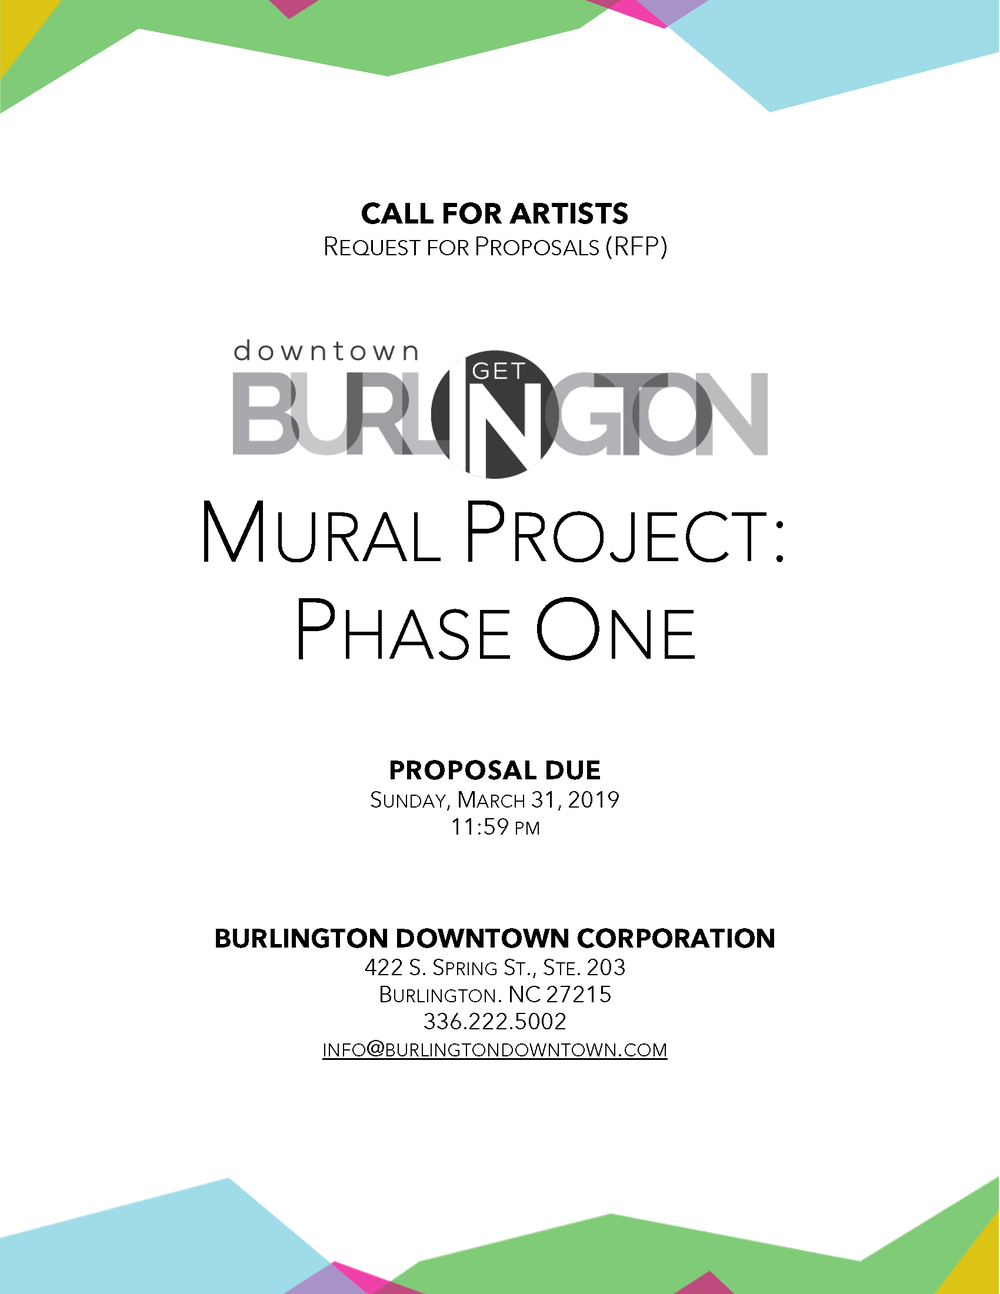 BDC CALL-FOR-ARTISTS RFP - FINAL_Page_1.png